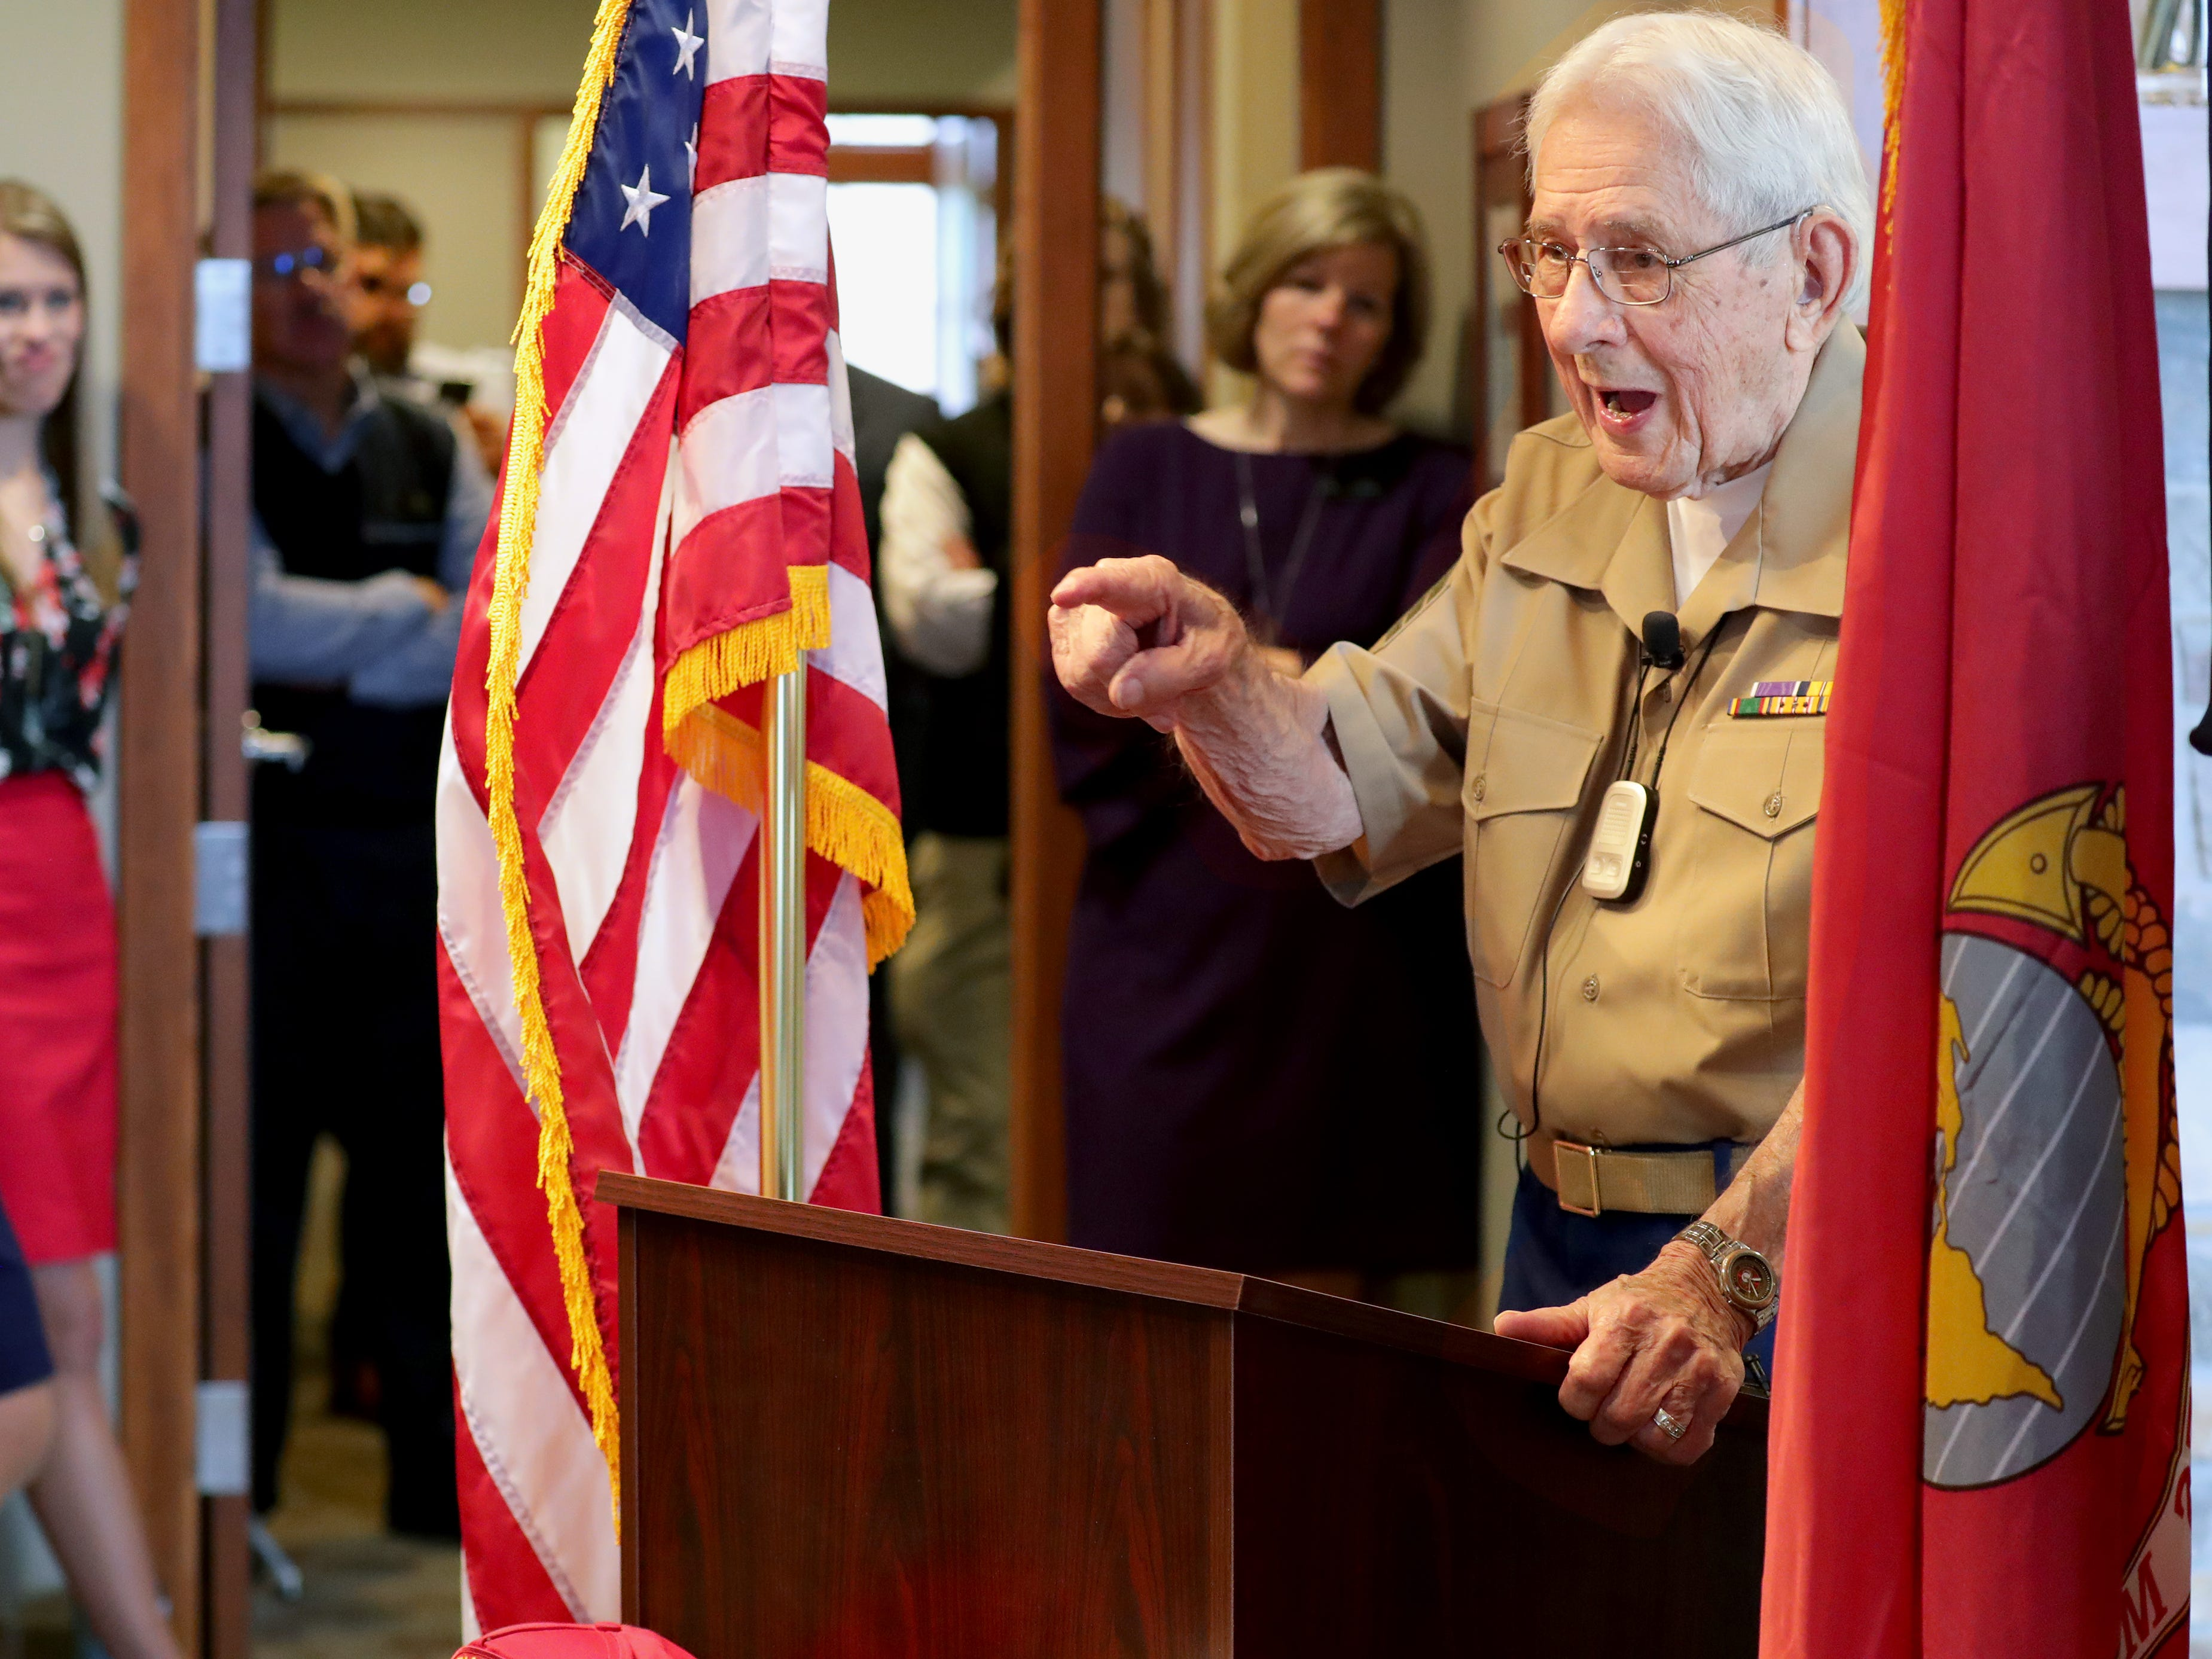 Sgt. Edgar Harrell speaks as an overflow crowd listens at Spectrum Investment Advisors in Mequon on Wednesday.  Harrell is the last surviving Marine from the World War II sinking of the USS Indianapolis, the ship that carried the atomic bomb to Tinian Island and was sunk by a Japanese submarine a few days after delivering its cargo.